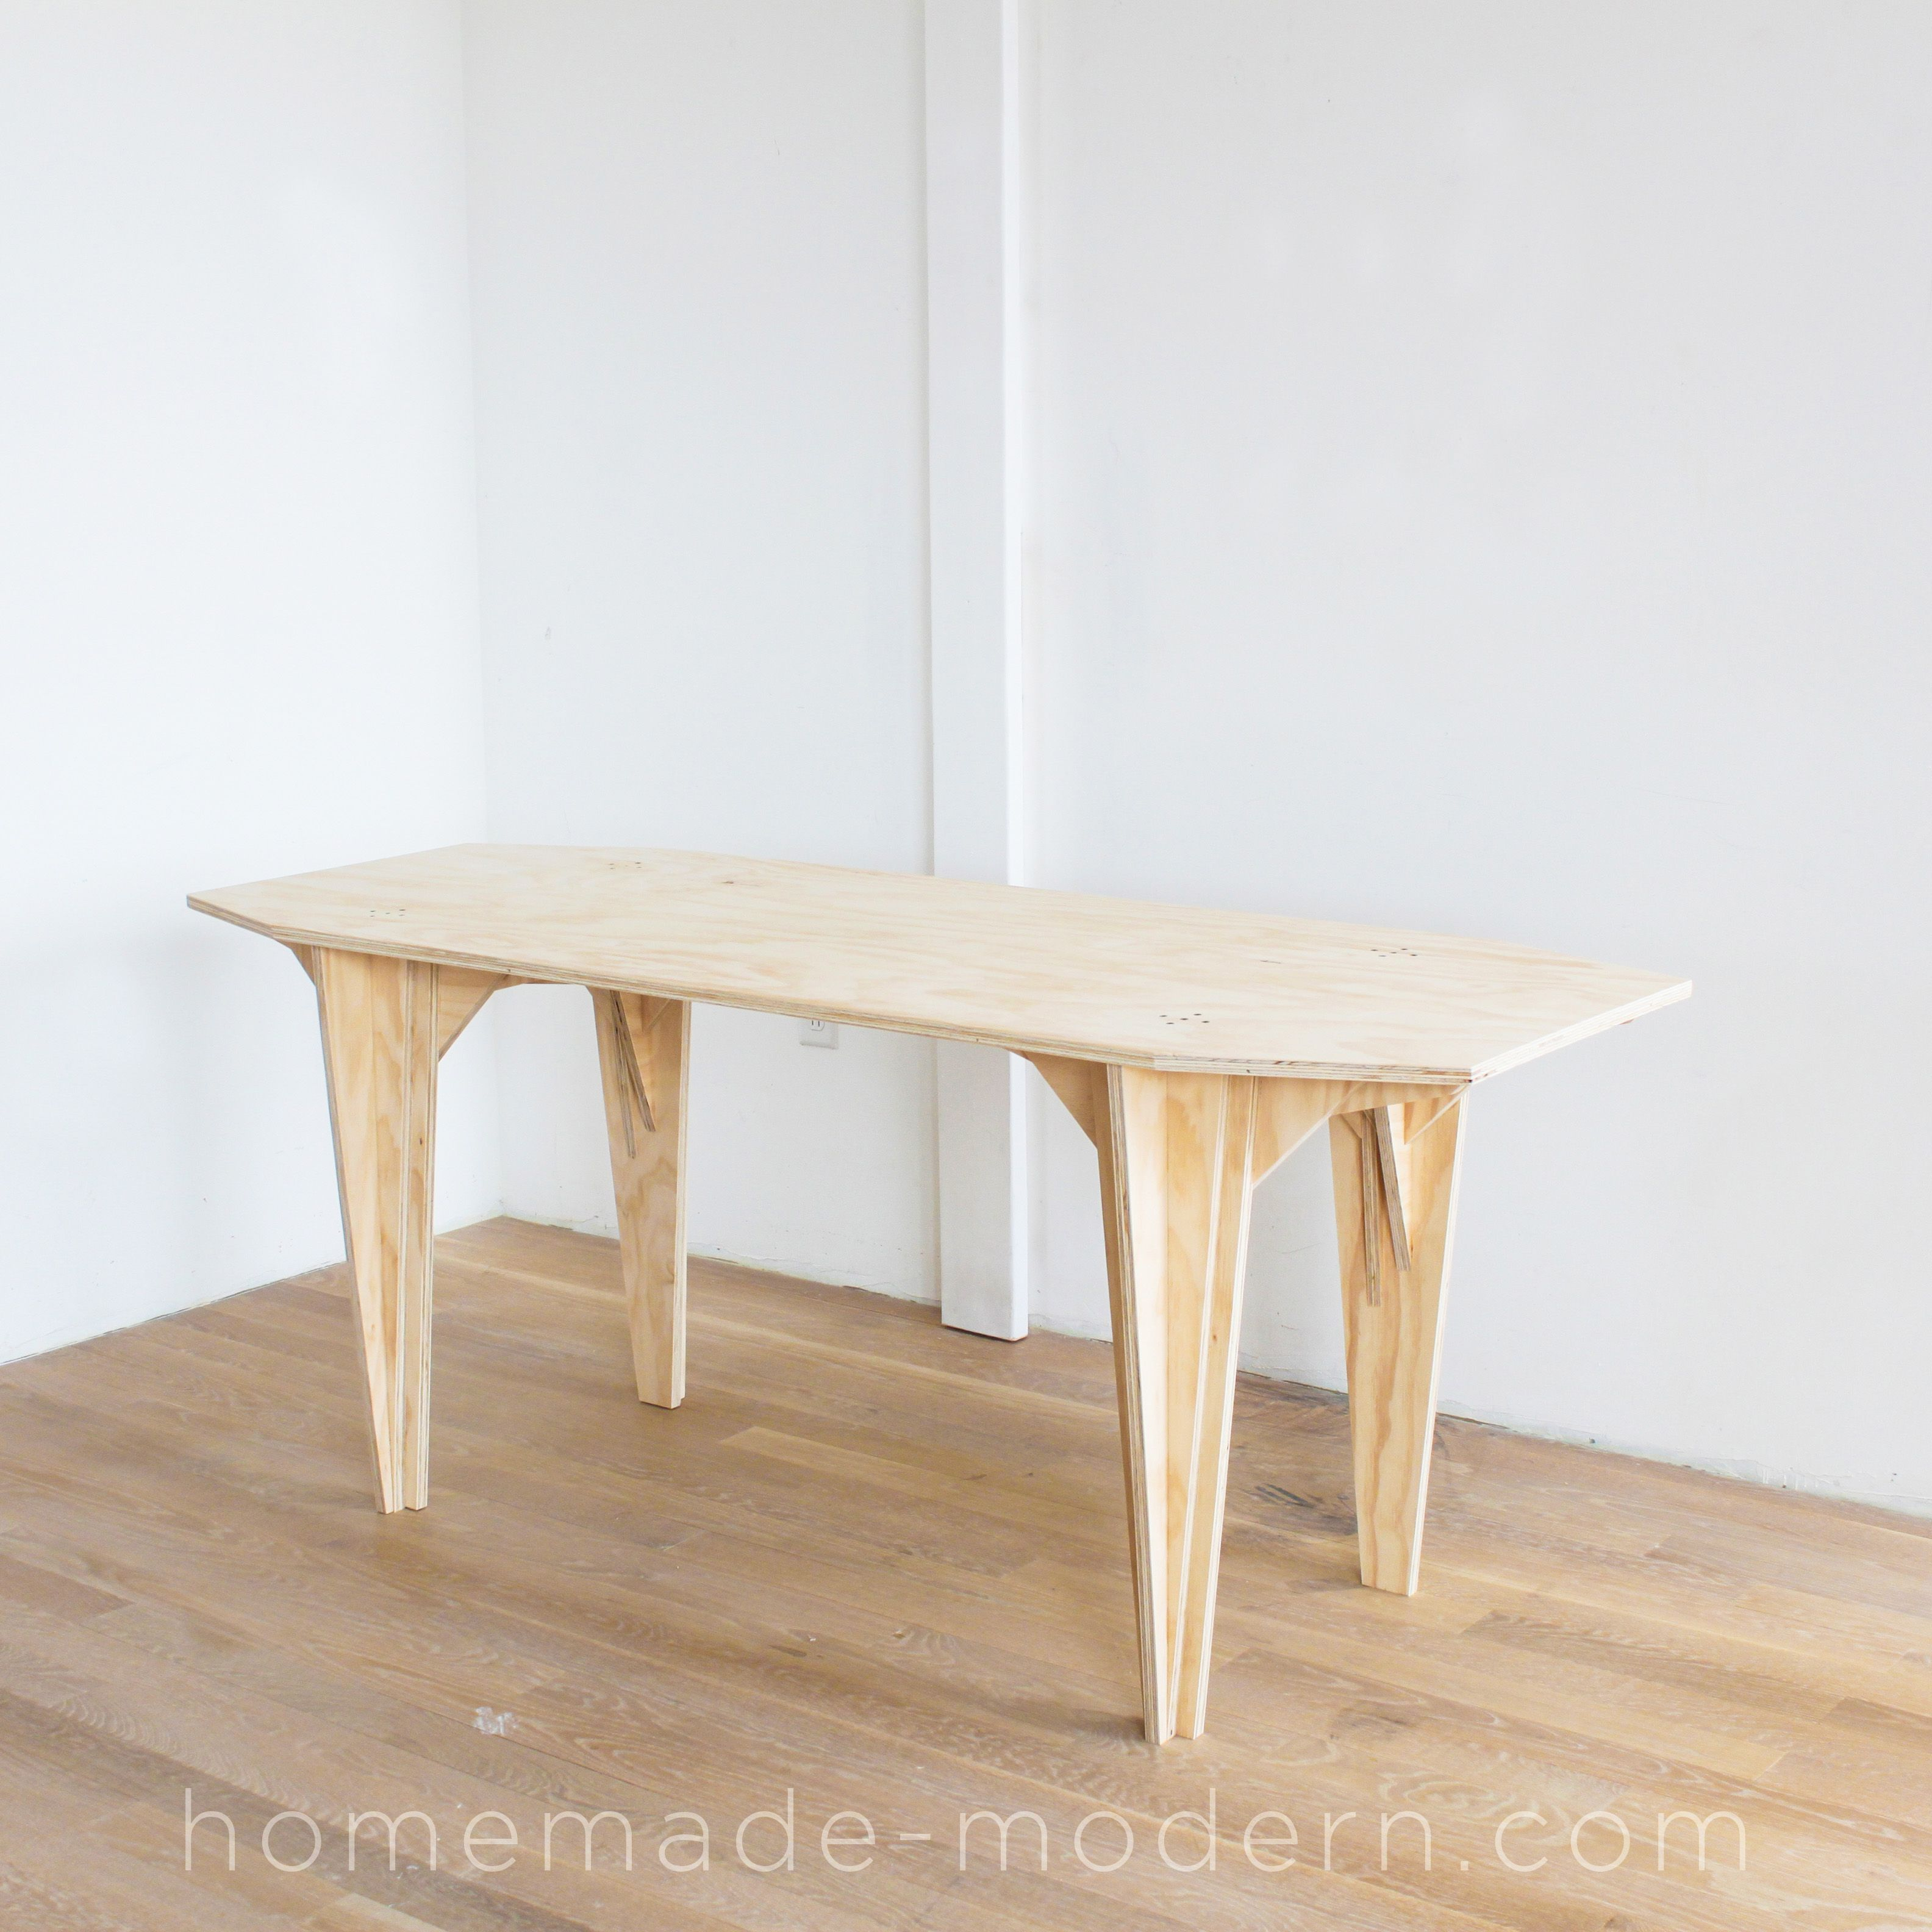 This Diy Plywood Table Is Made Out Plywood From Home Depot And Does Not Require A Cnc Machine To Make Full Instruction Plywood Table Homemade Modern Table [ 3168 x 3168 Pixel ]